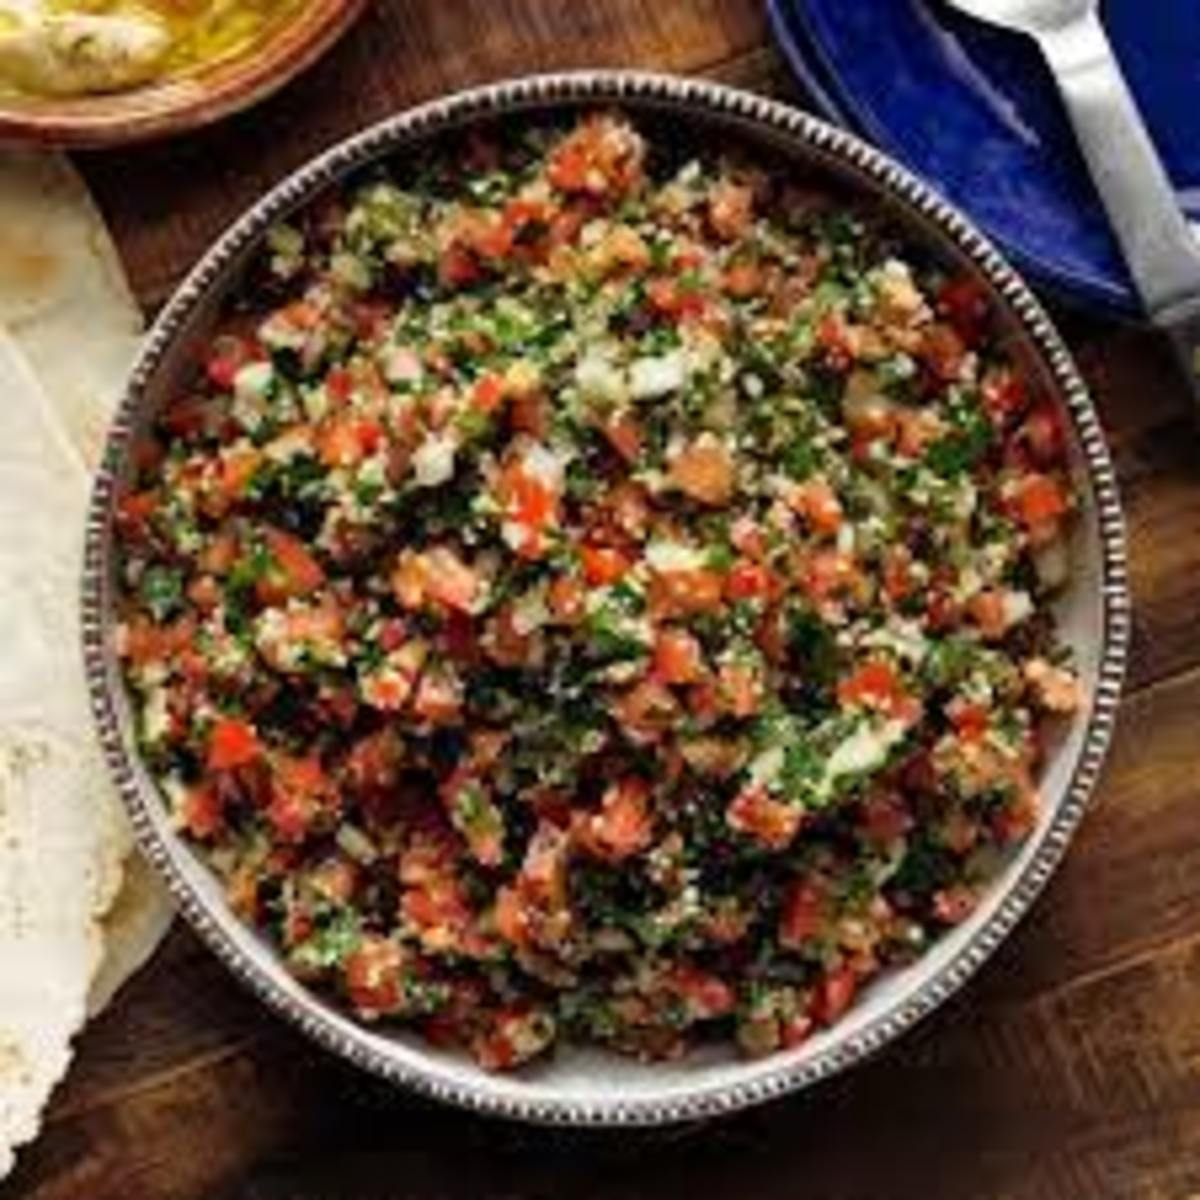 Famous wheat and herb salad of Arabian meze